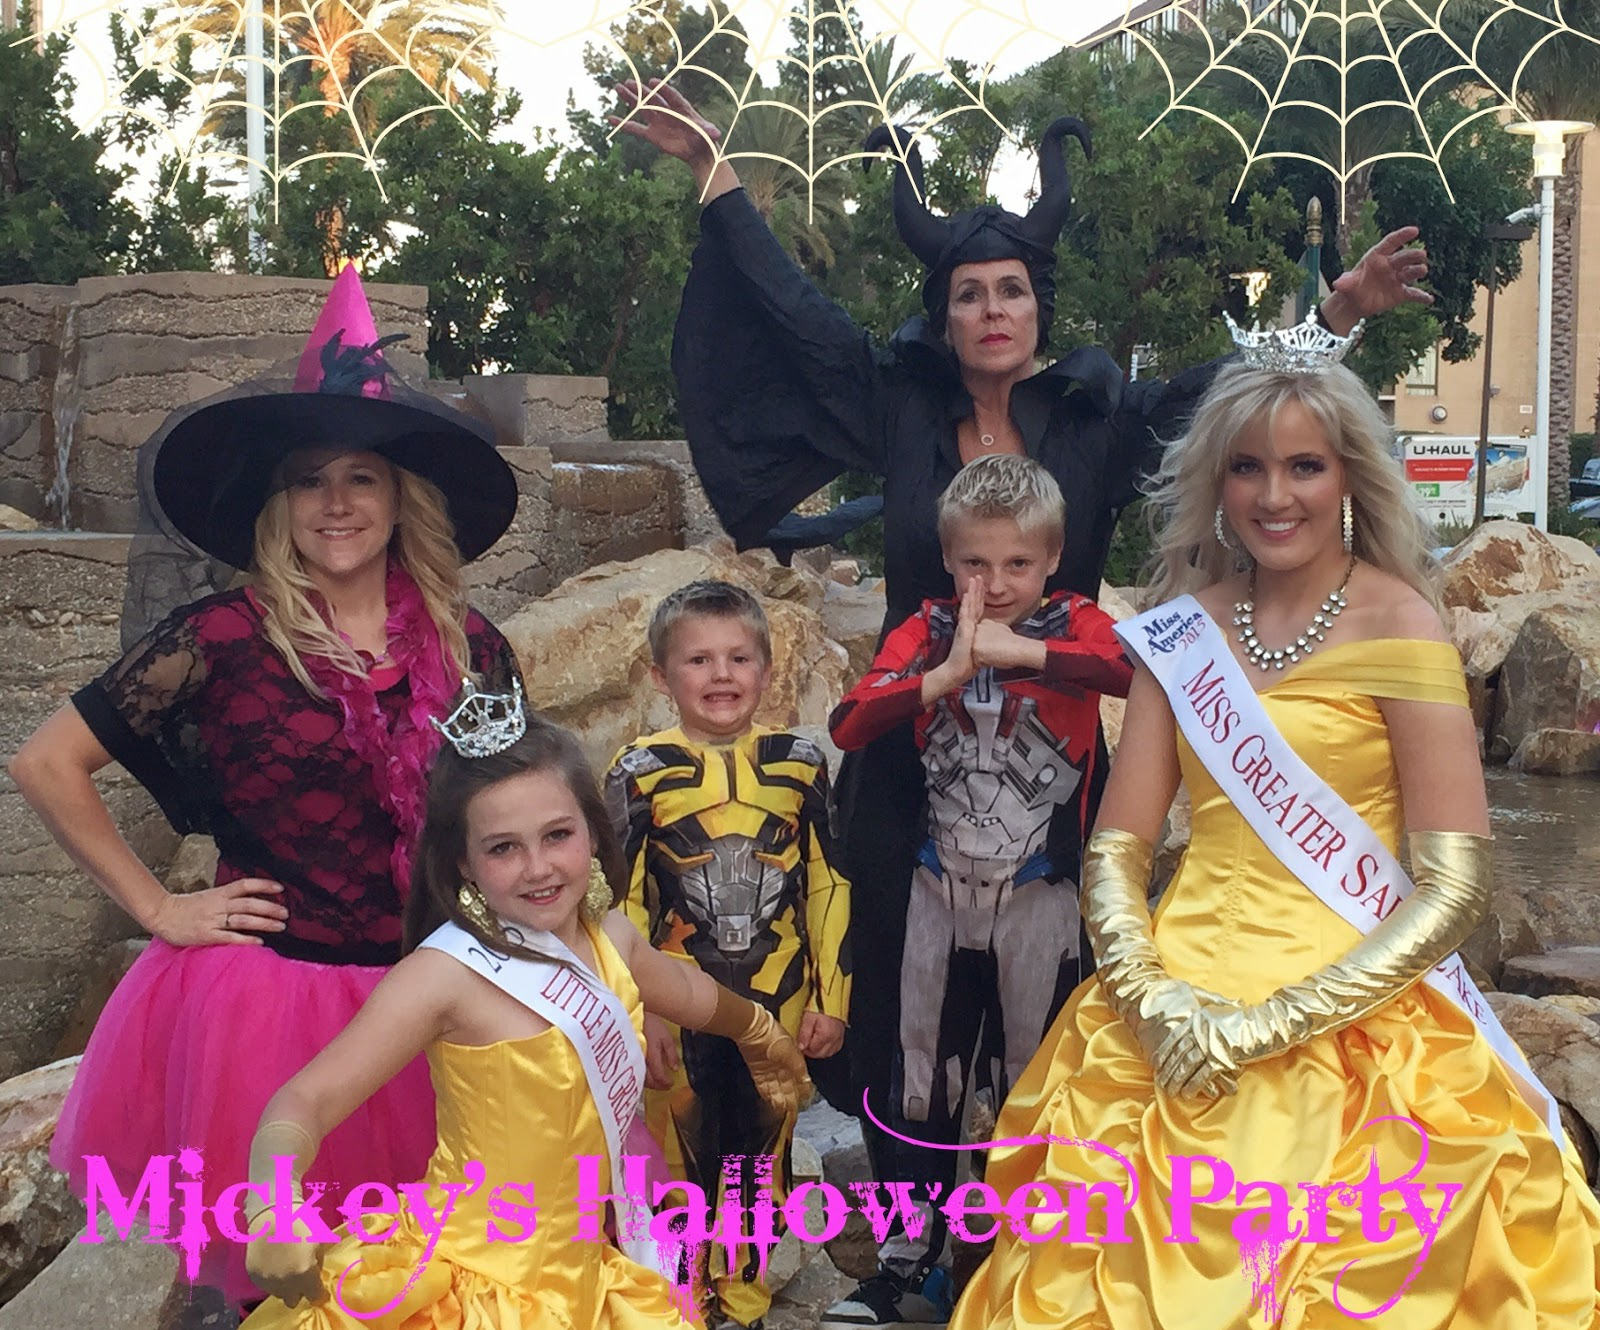 Disney Princesses at Mickey's Not So Scary Halloween Party ...